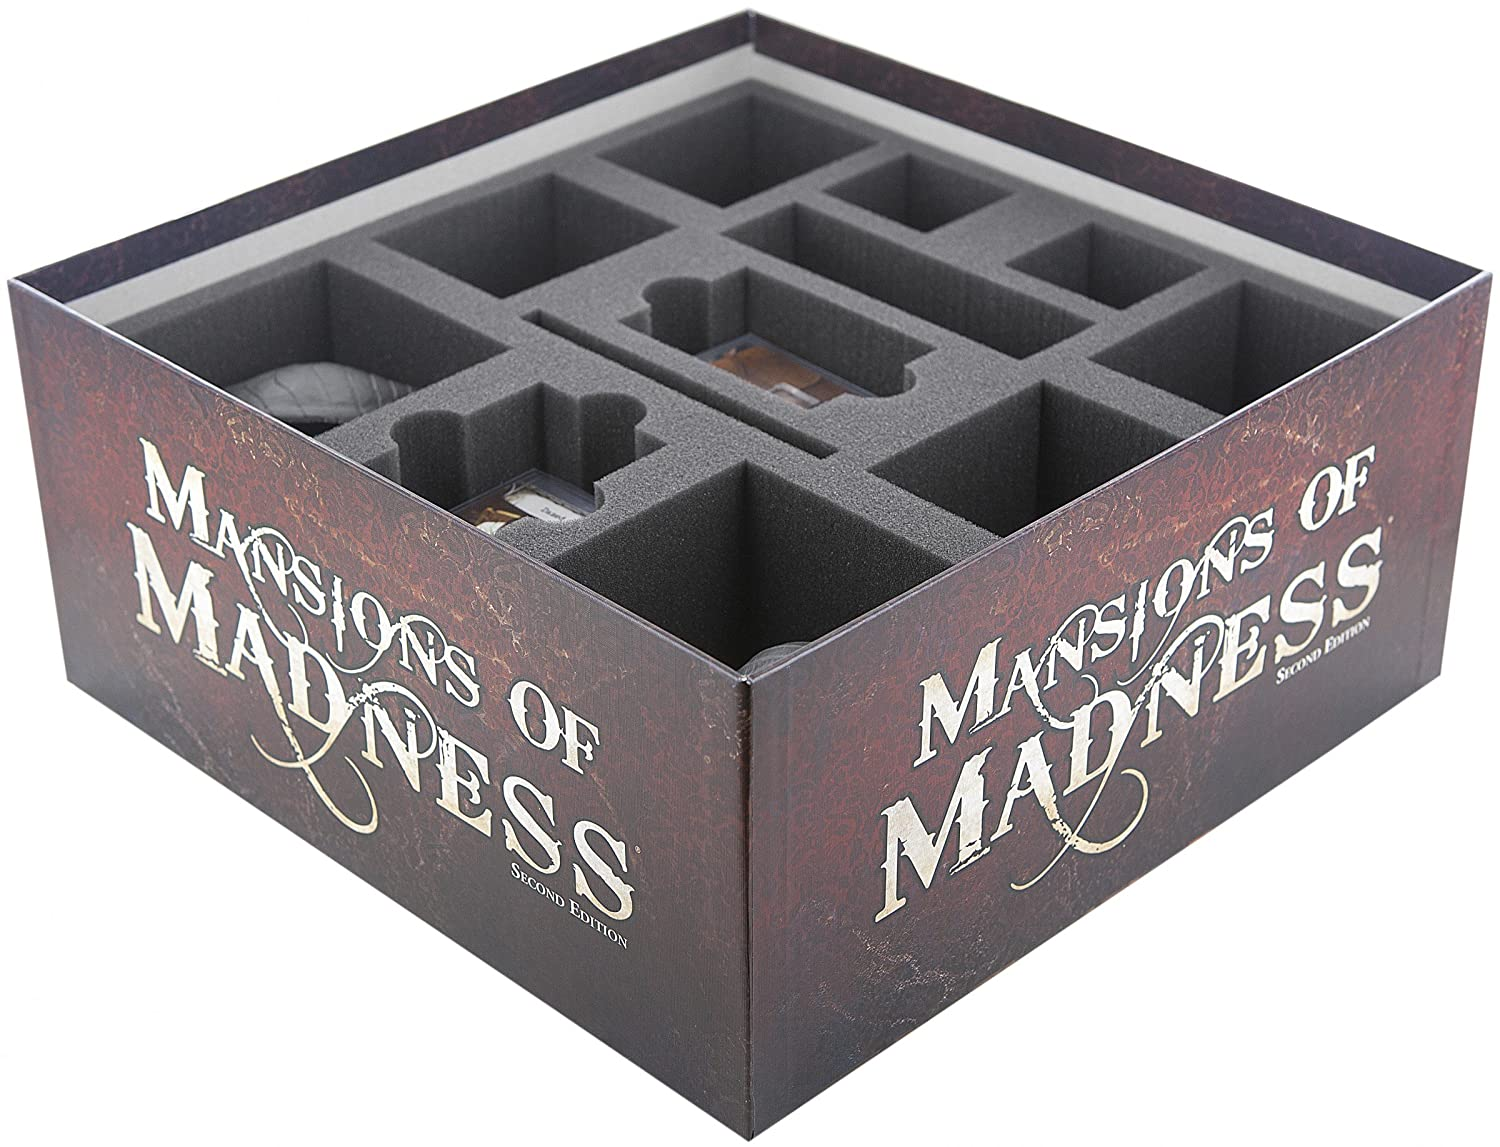 Foam tray value set for Mansions of Madness - 2nd Edition for 2nd Edition  B01MSJDK5H